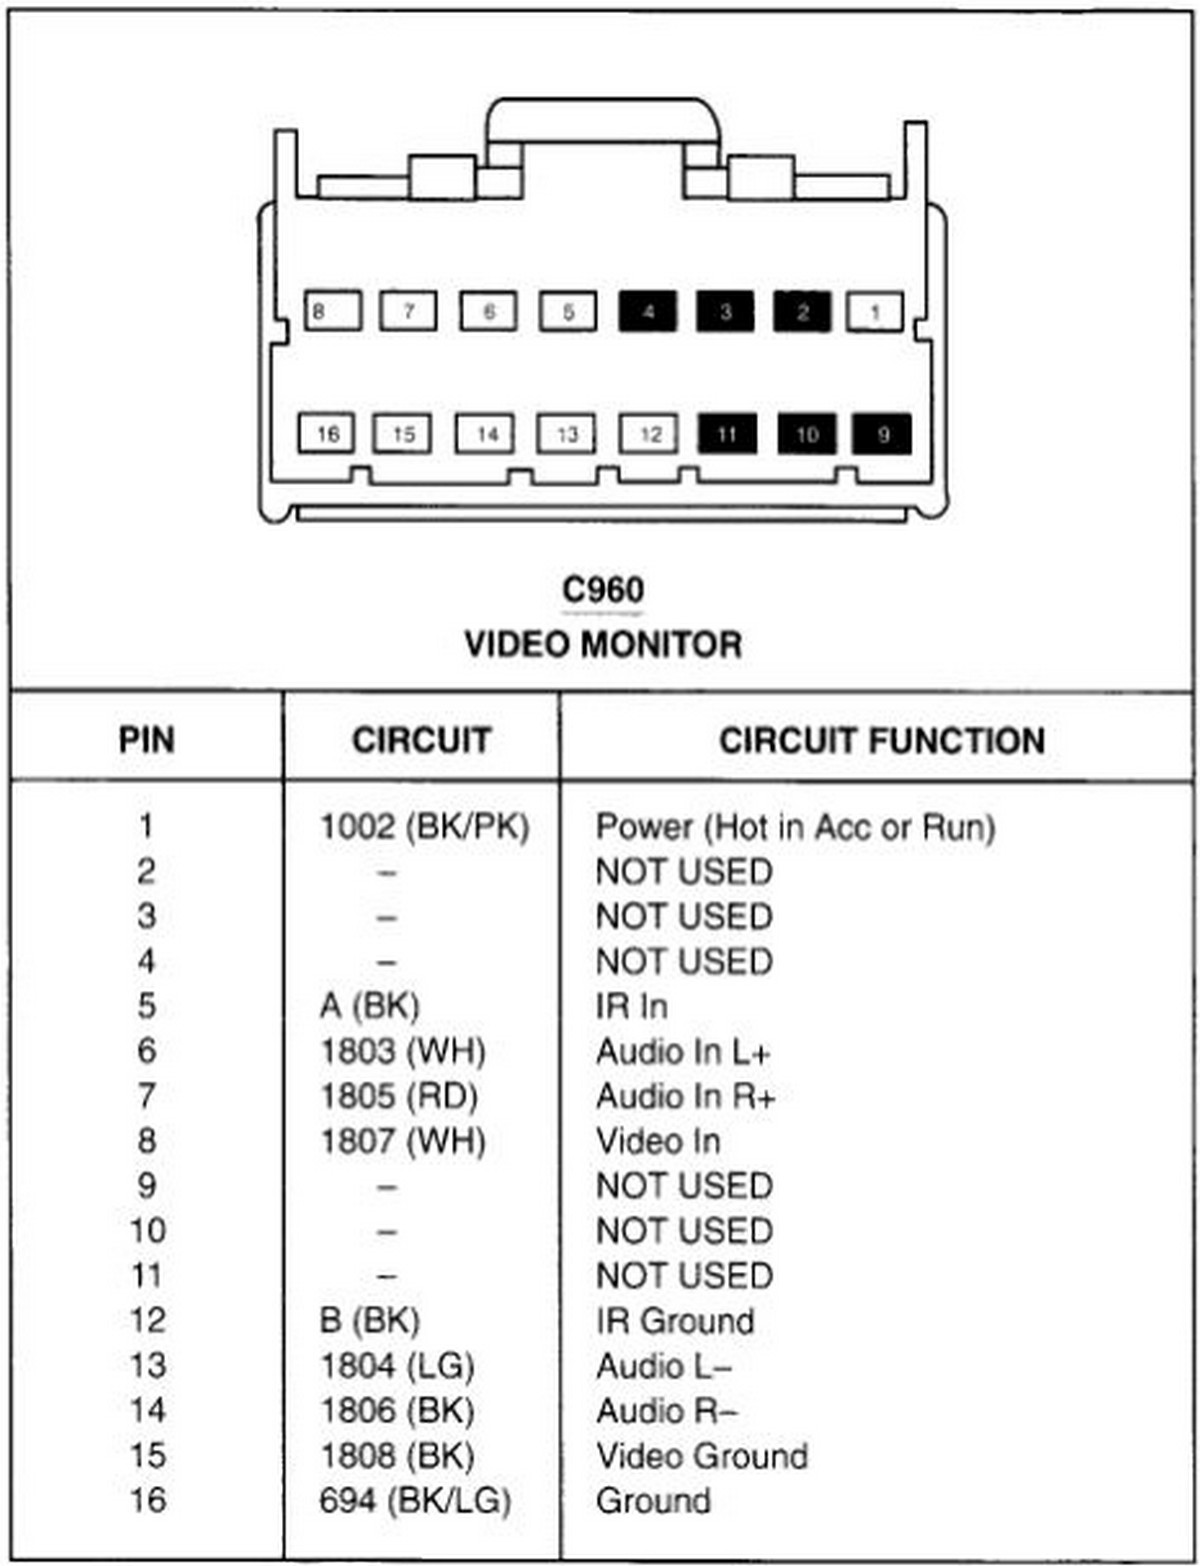 Ford Car Radio Stereo Audio Wiring Diagram Autoradio Connector Wire 2004 Expedition Ac Diagrams Installation Schematic Schema Esquema De Conexiones Stecker Konektor Connecteur Cable